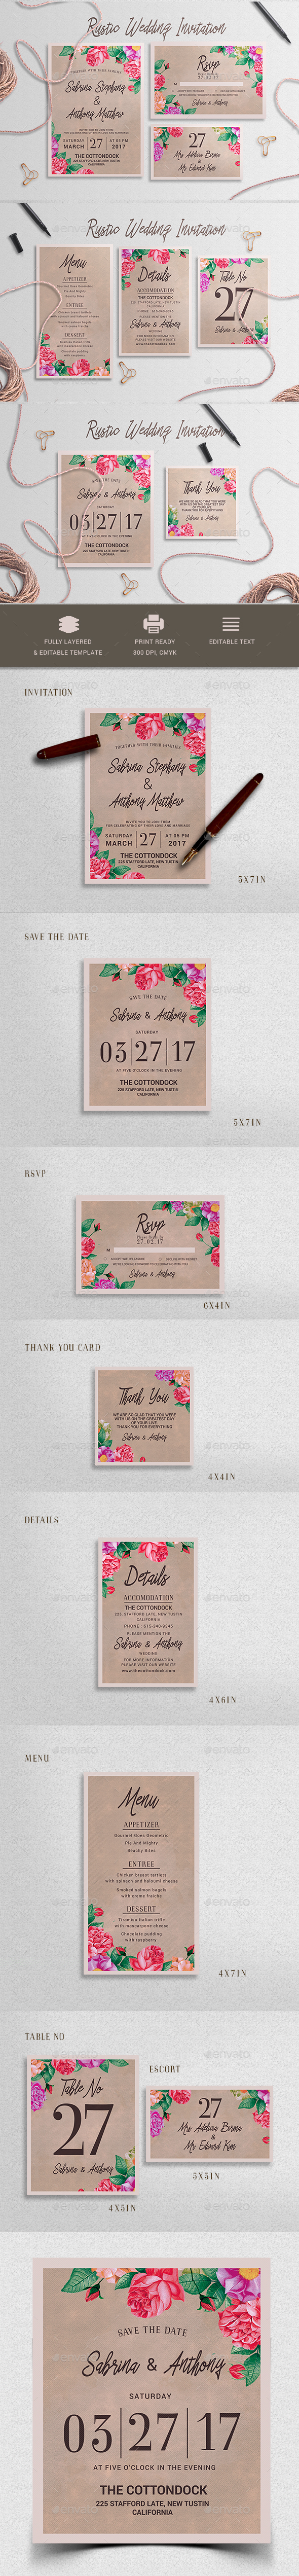 Rustic Wedding Invitation Set - Weddings Cards & Invites